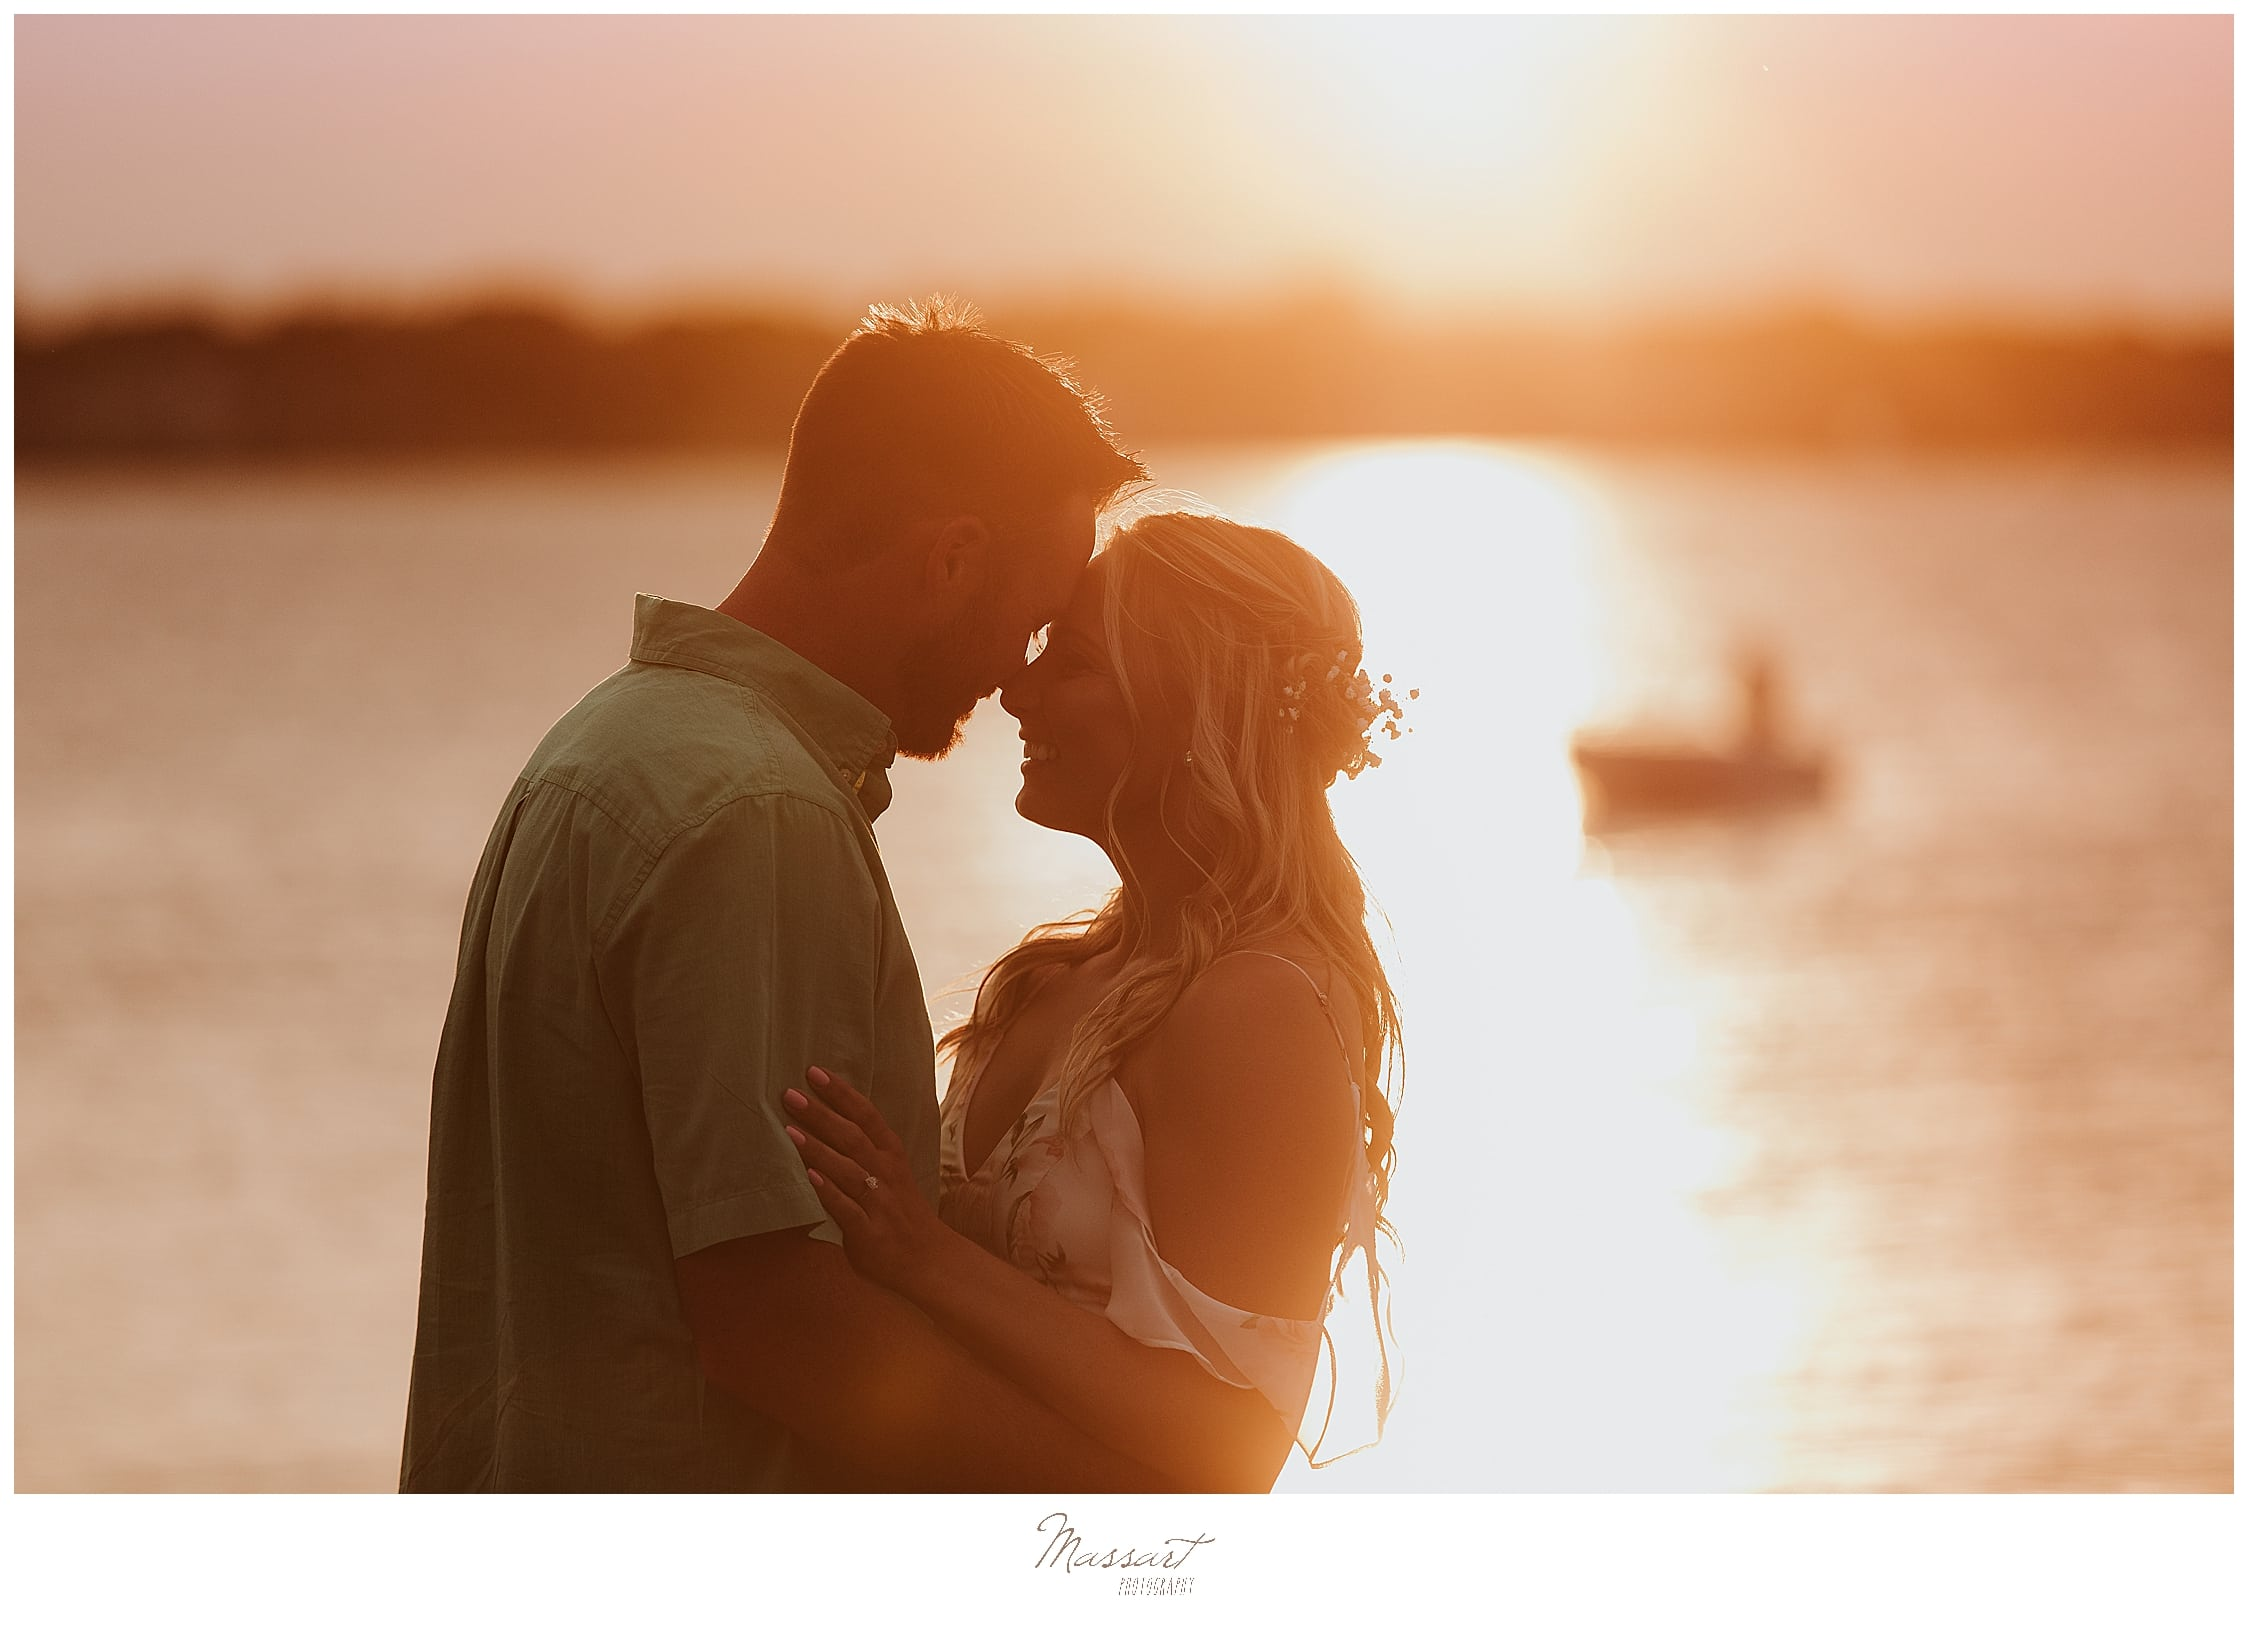 Romantic sunset image during an engagement session with wedding photographers in RI